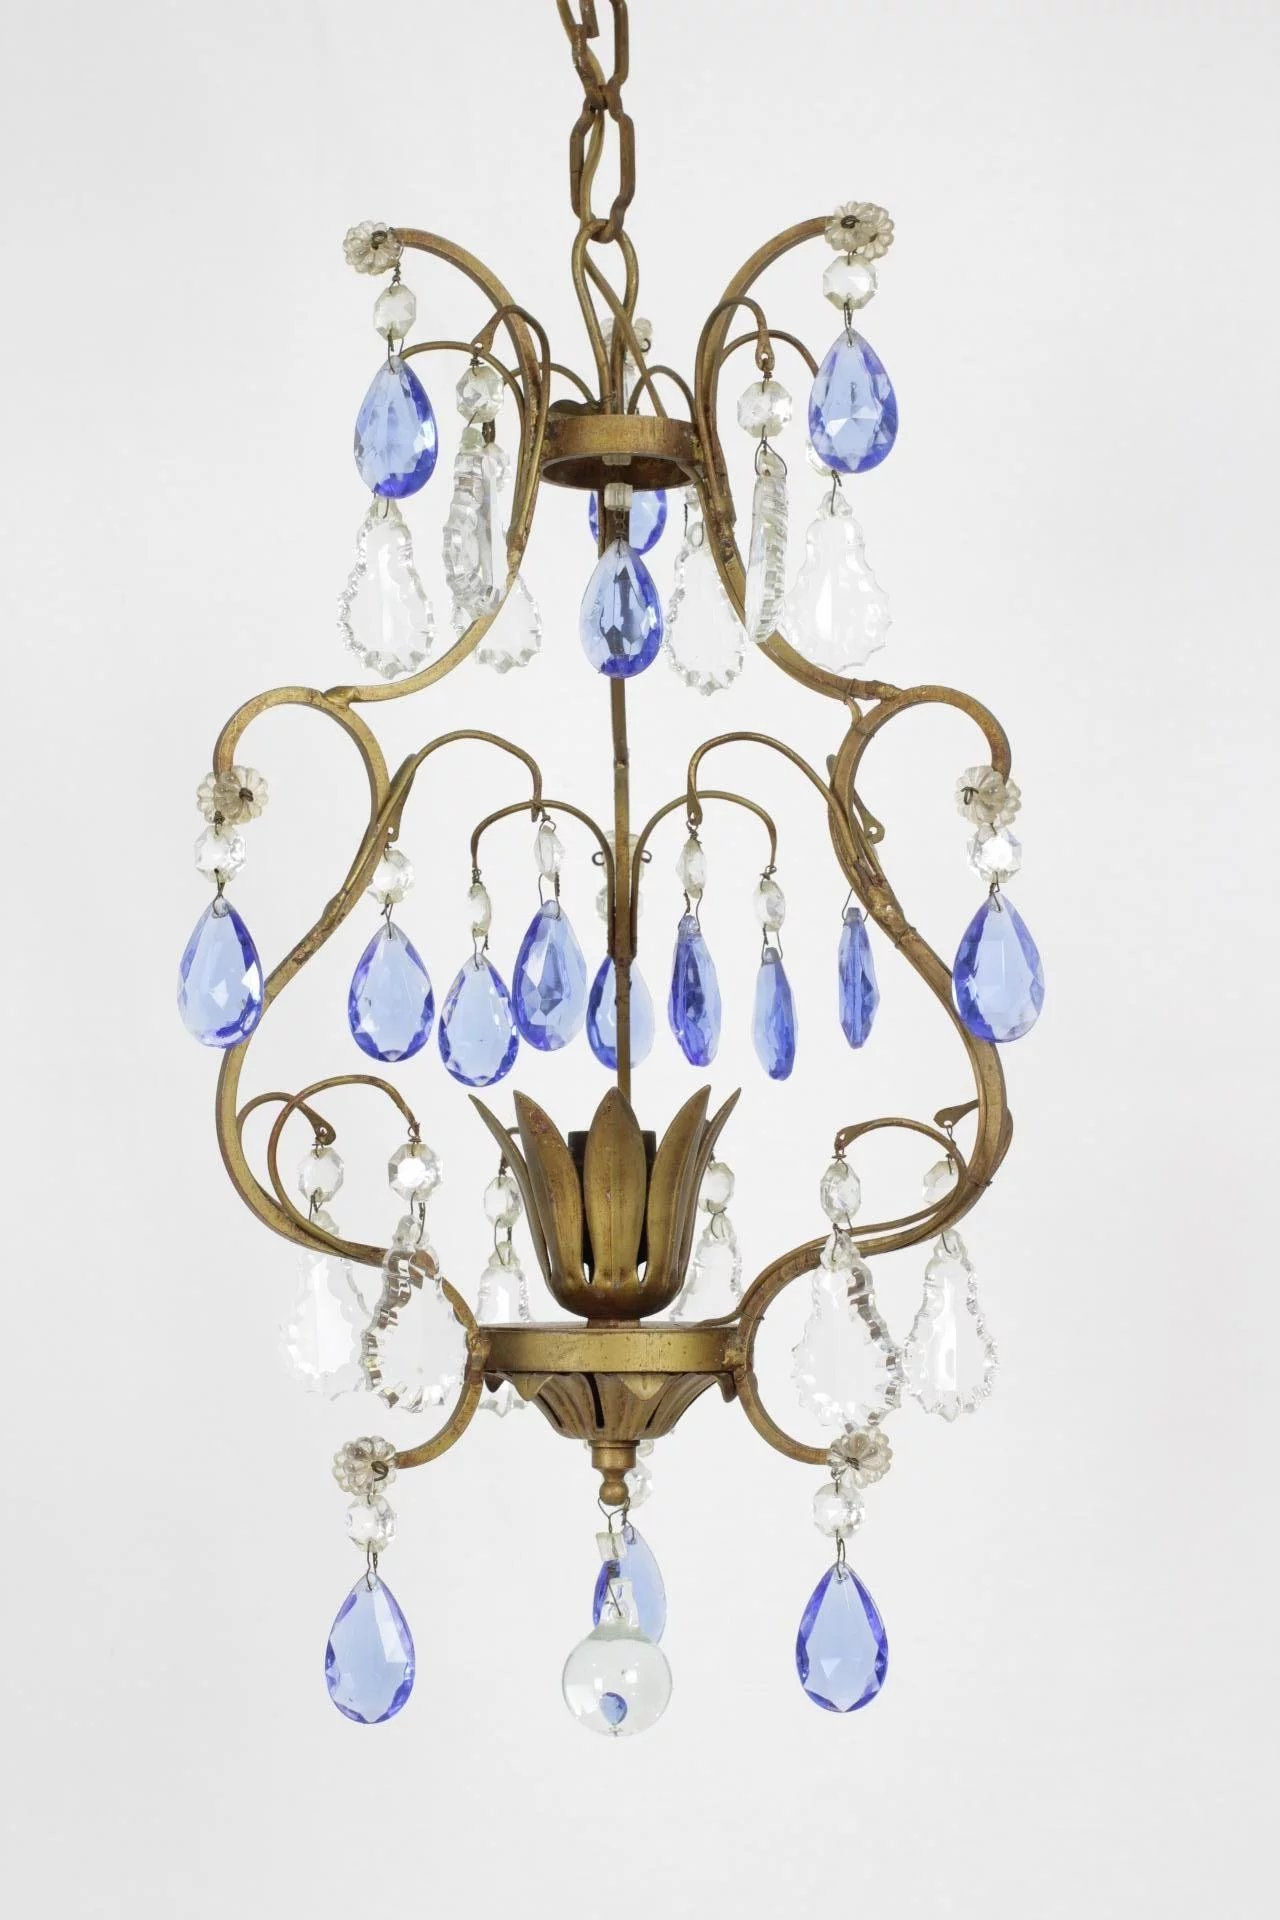 Chandelier with birds and crystals chandelier designs chandelier with birds and crystals designs arubaitofo Gallery